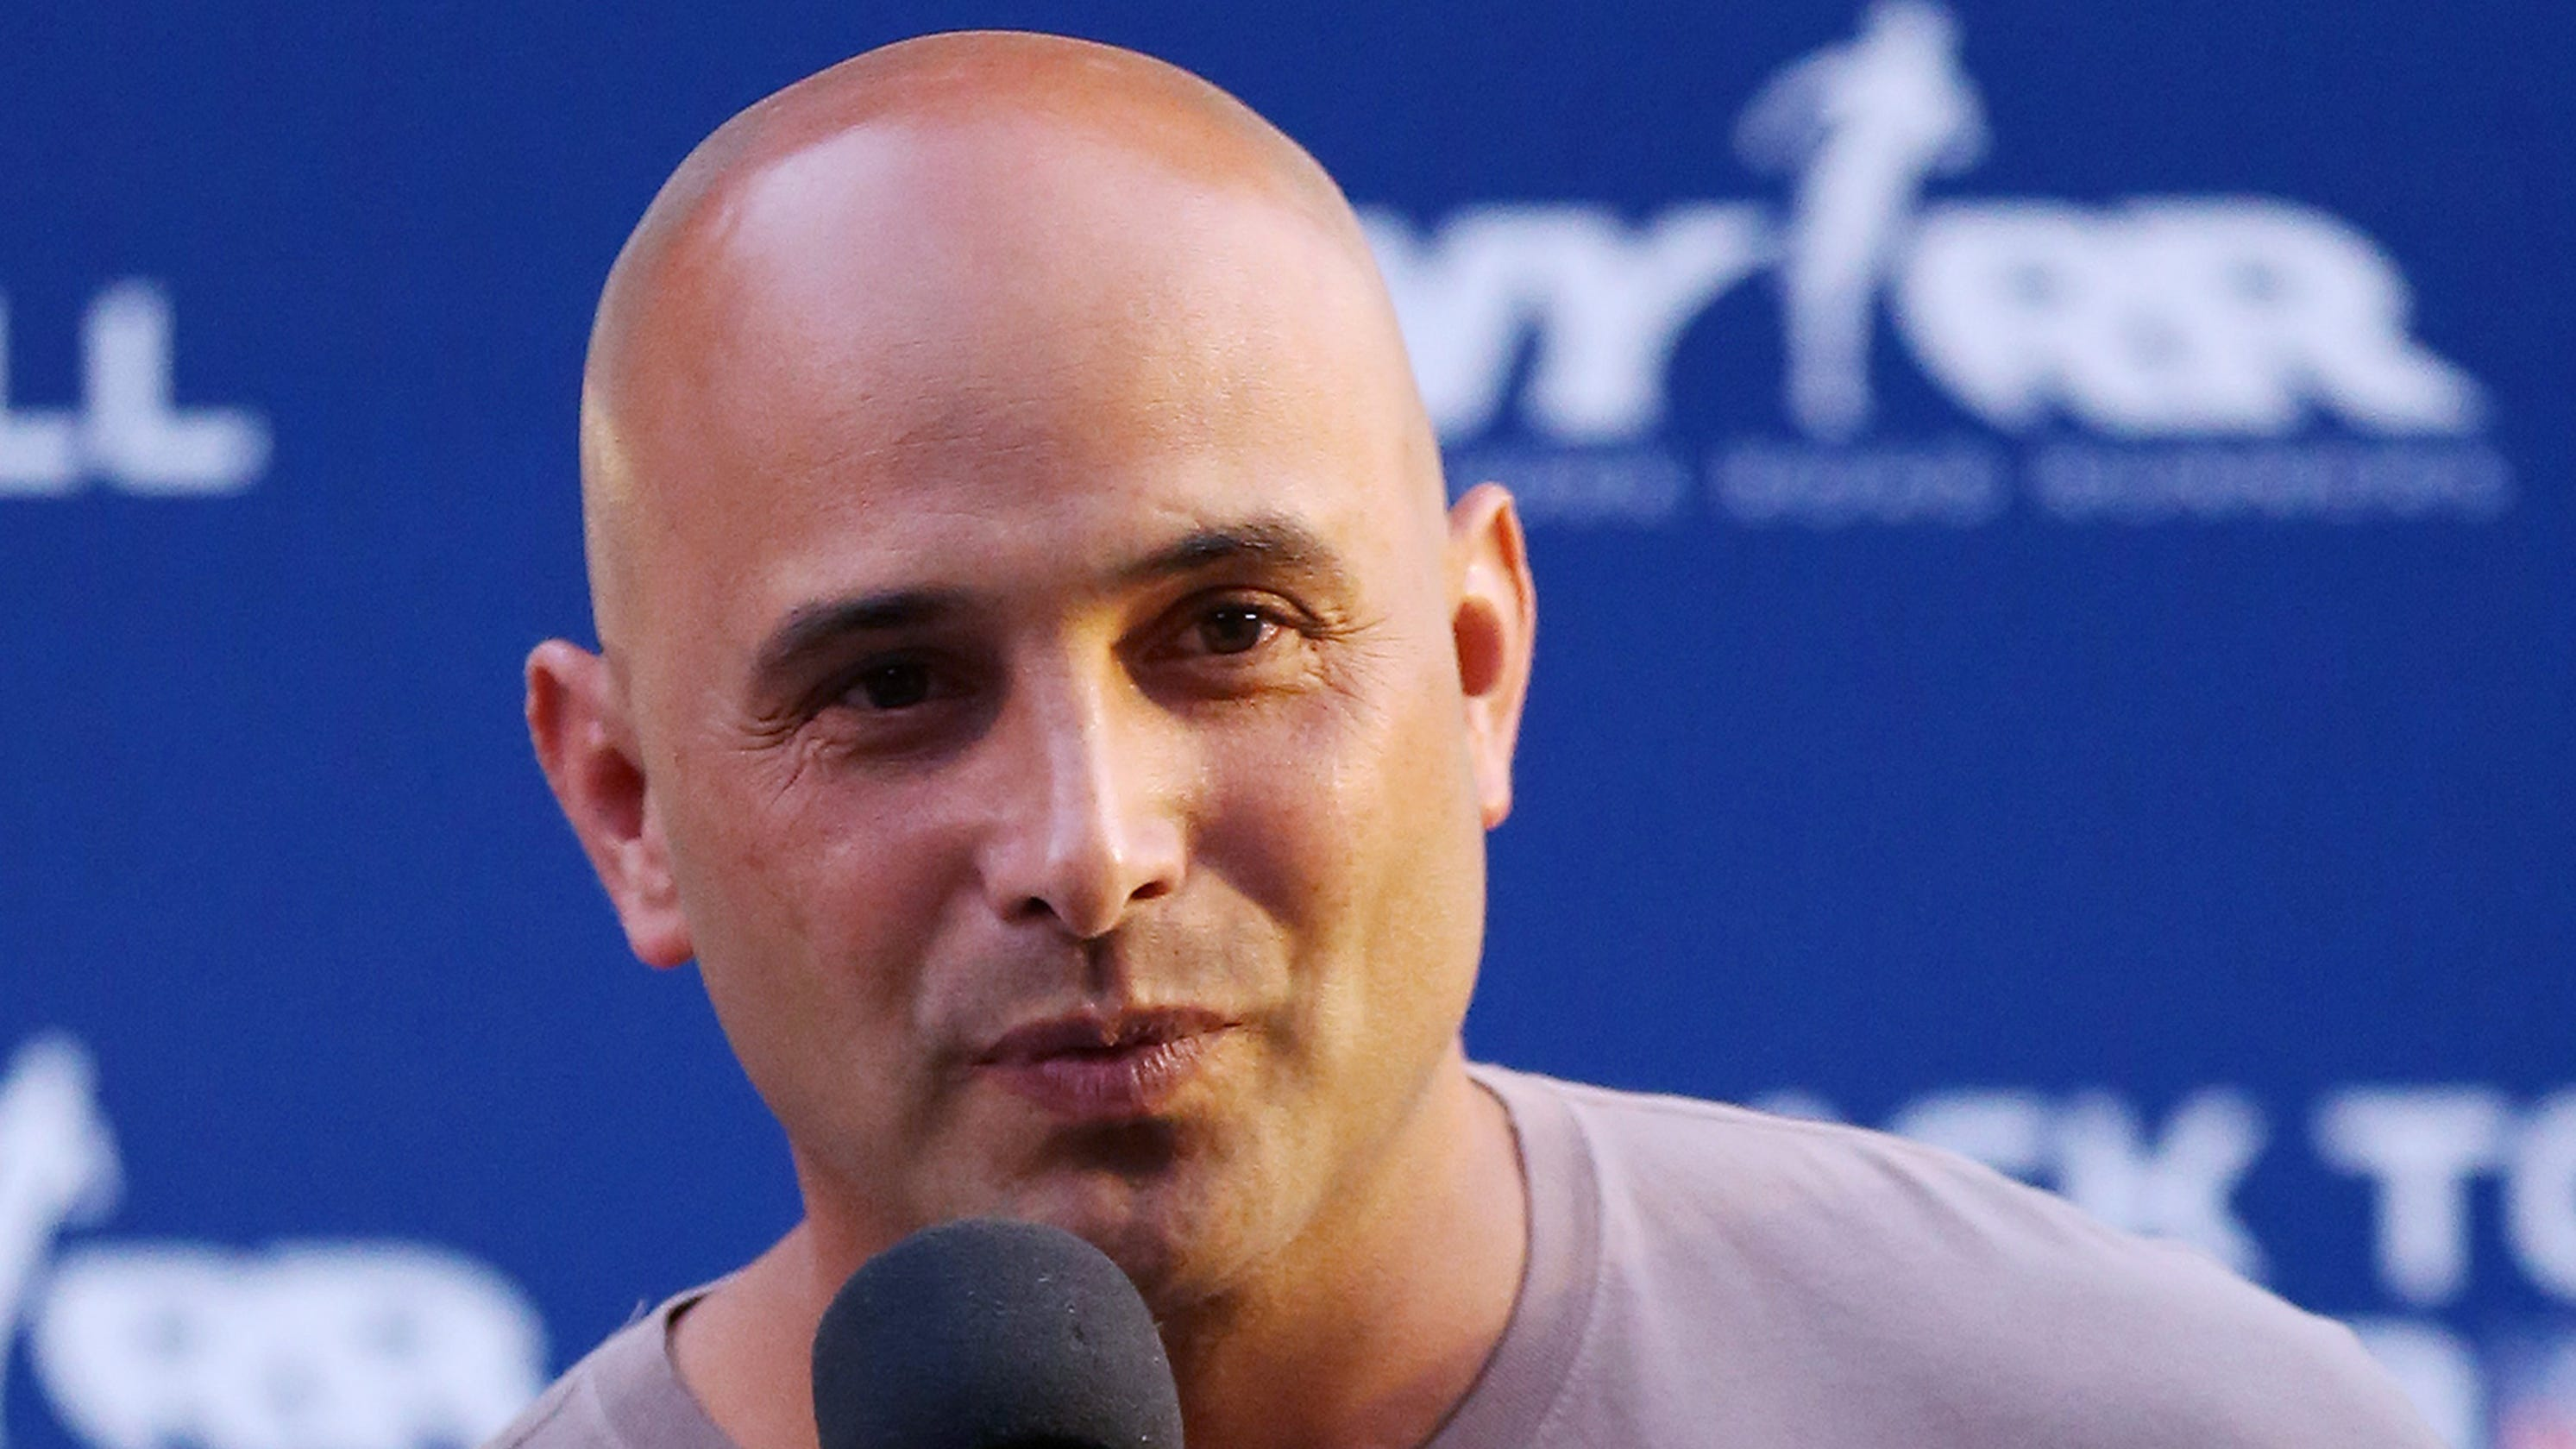 Craig Carton returns to WFAN after prison stint, will host drivetime show with Evan Roberts